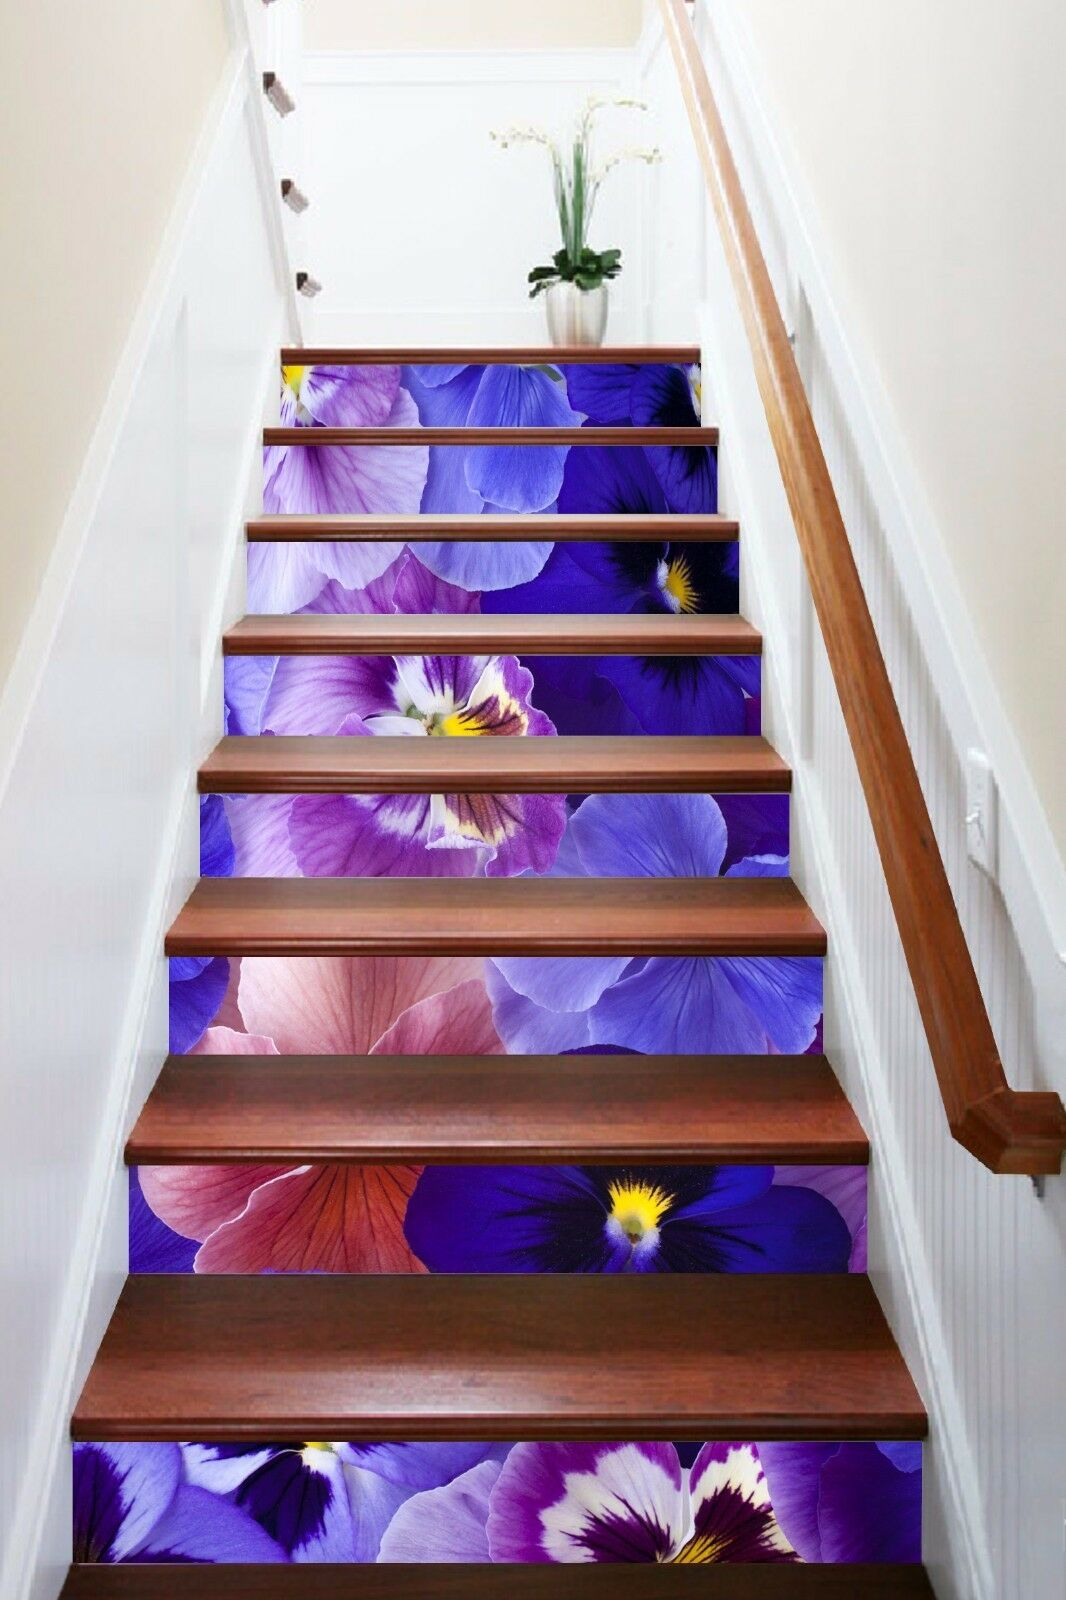 3D Pretty Flowers 9 Stair Risers Decoration Photo Mural Vinyl Decal Wallpaper AU